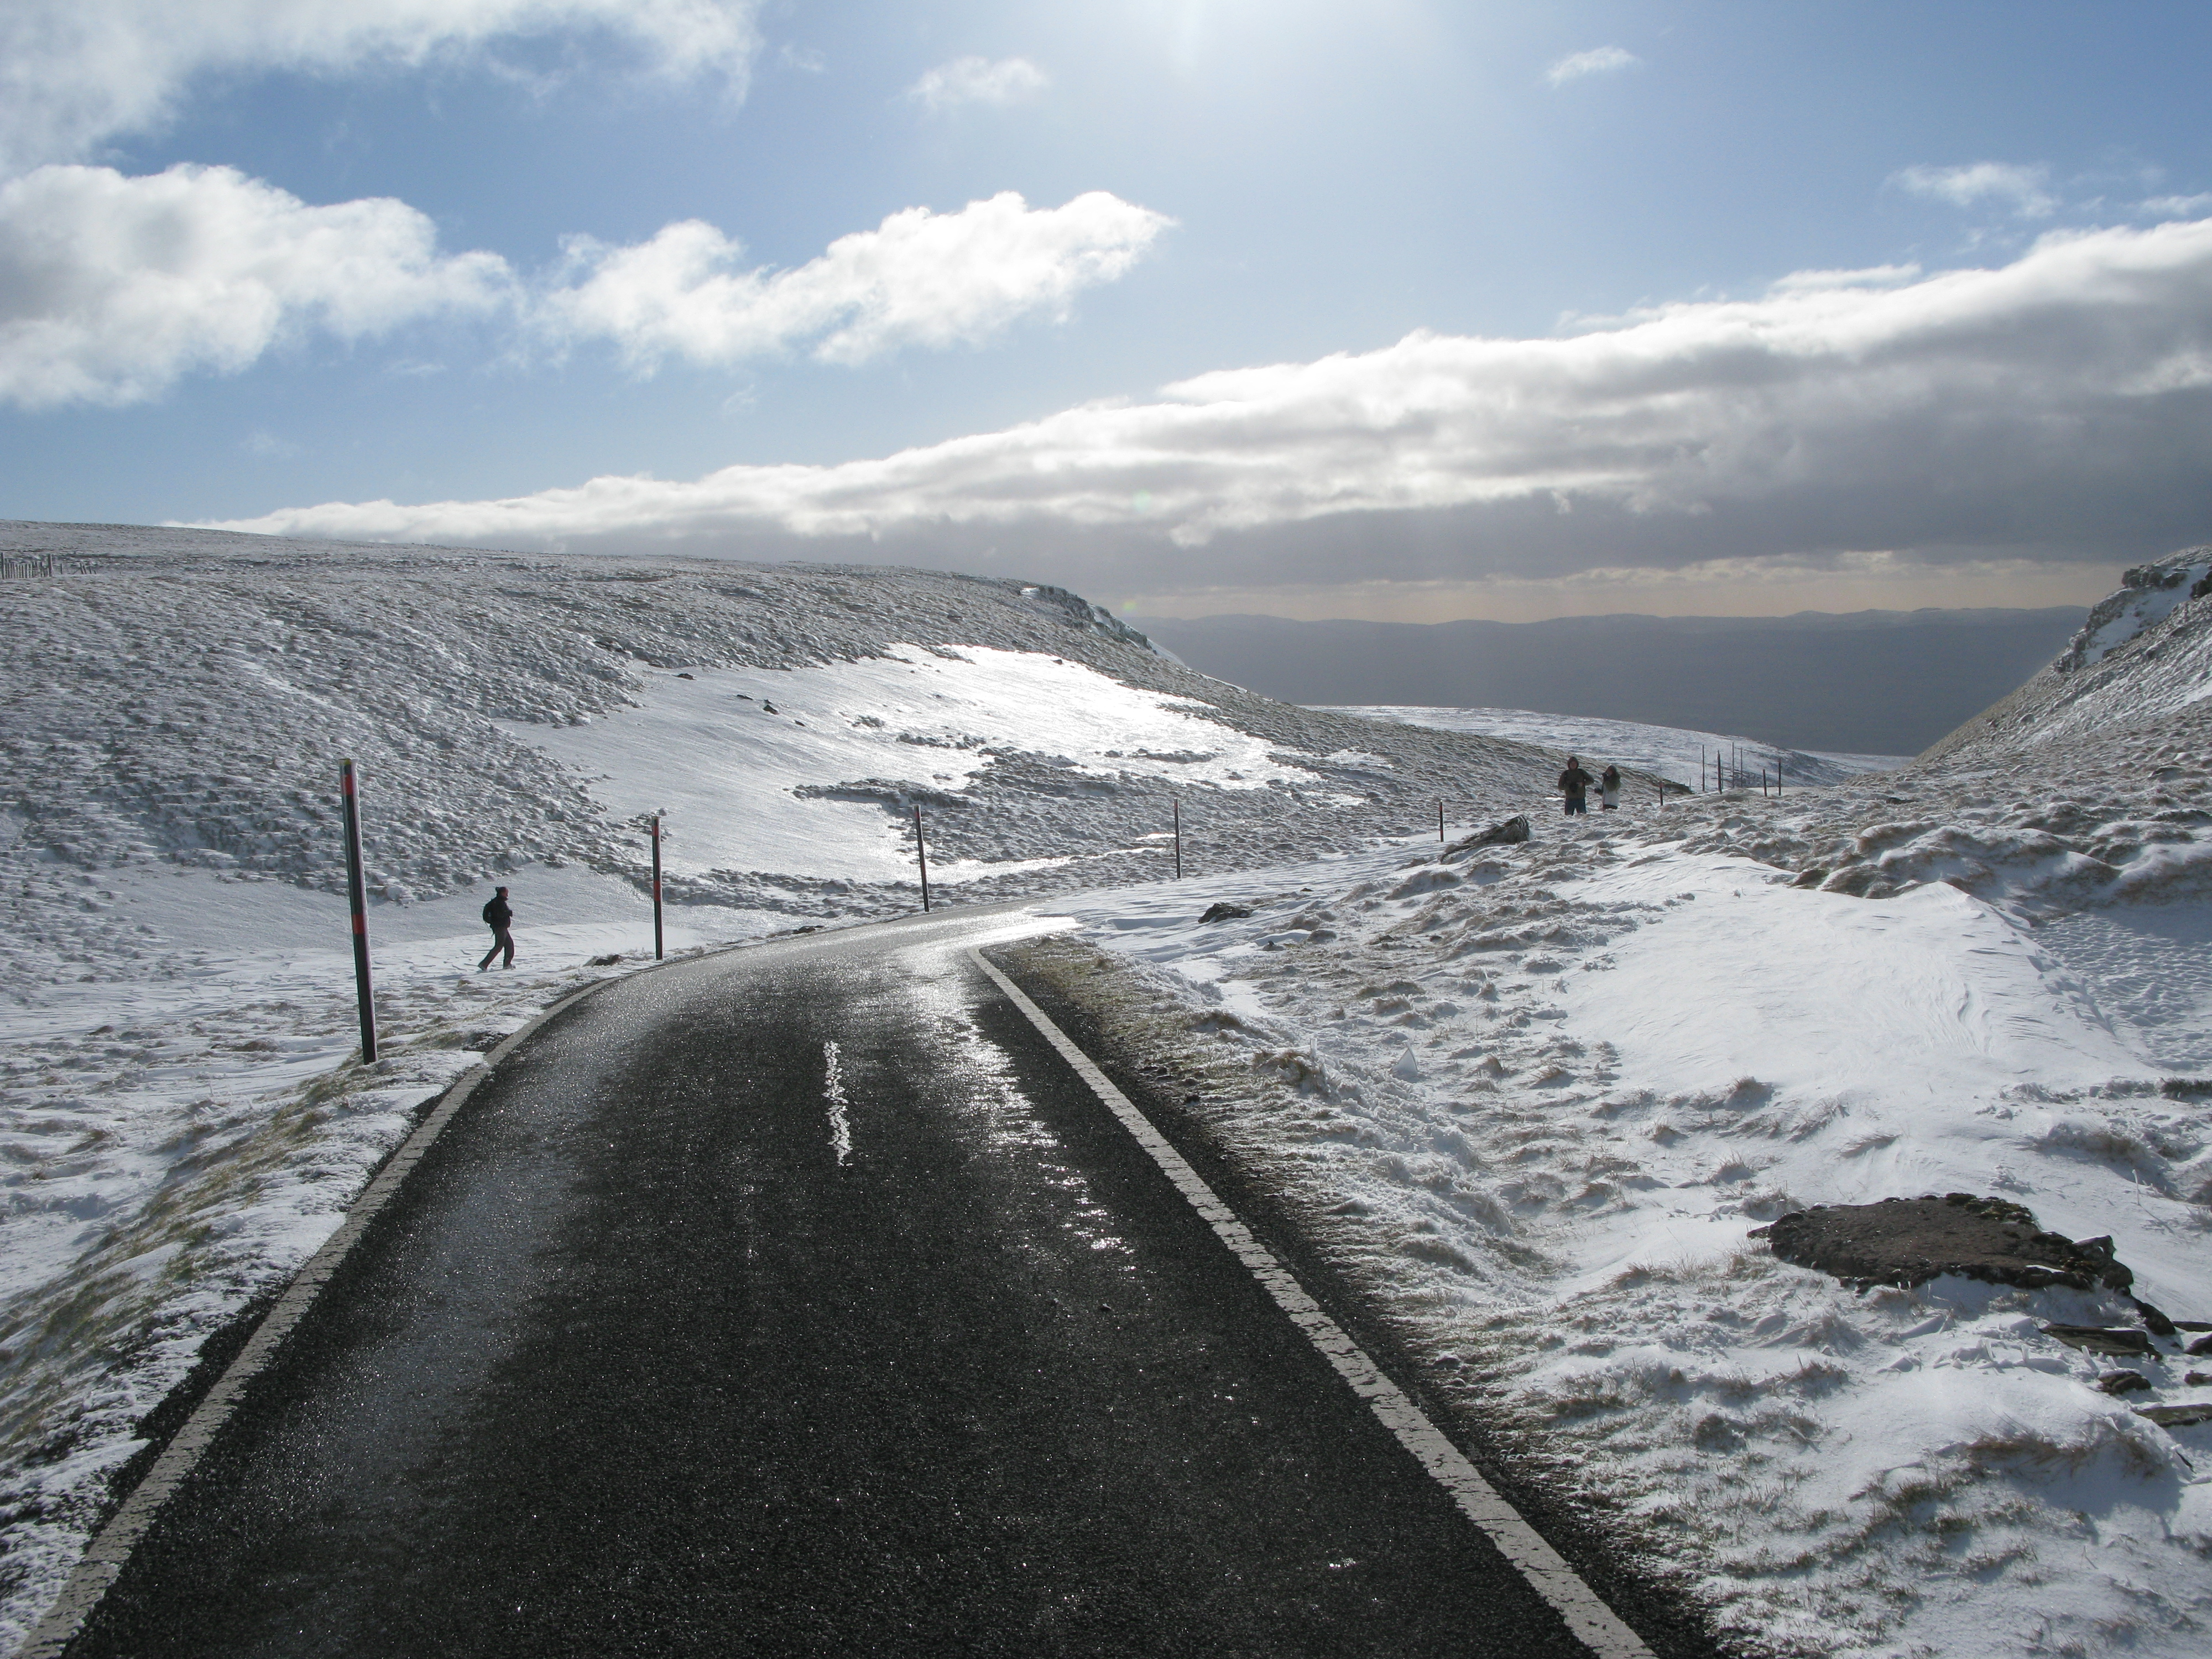 Close to the summit of Great Dun Fell, February 2013